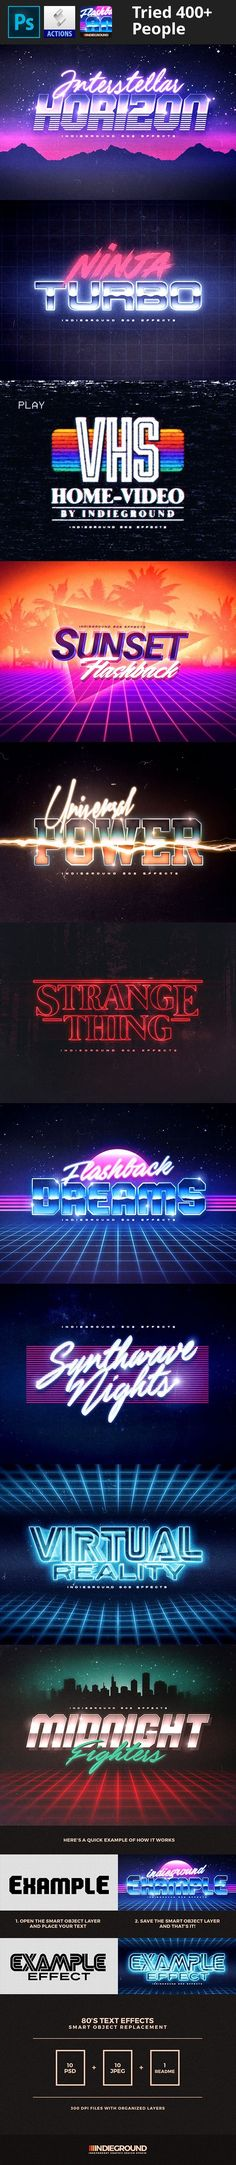 "1980's, 1980s, 3d, 70s, 80's, 80s, add-on, classic, effect, hipster, indieground, insignia, label, logo, metal, mock-up, mockup, pattern, photorealistic, rad, retro, style, synthwave, text, type, typography, vhs, vintage 80's Retro Text Effects ""Simple & 3d Retro Effect"" – This graphic resource gives you a quick & easy possibility to apply an high quality retro / vintage / futuristic / 80s classic style to your text. You can use it on simple text, shapes and vector logo. You..."